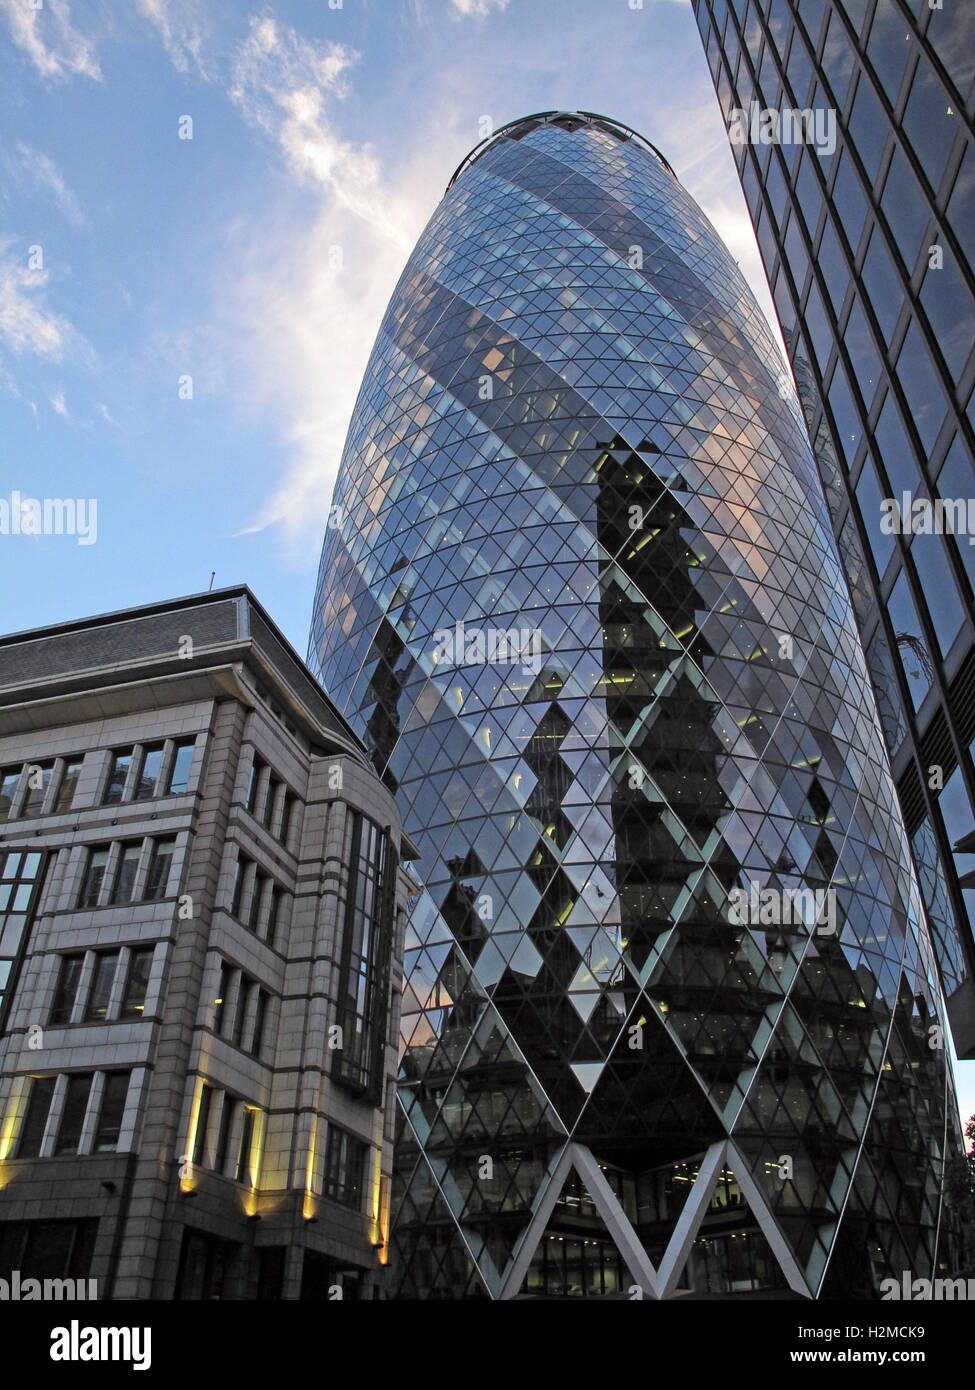 Office,space,gerkin,Marys,London,England,UK,at,Dusk,finance,financial,money,district,commercial,skyscraper,EC3A,8BF,services,passport,passporting,Brexit,EU,30 St Mary Axe,The Gherkin,Swiss Re Building,City Of London,EC3A 8BF,EU Passporting,GoTonySmith,@HotpixUK,Tony,Smith,different,unique,former,sites,of,the,Norman,Foster,cityscape,architecture,lit,illuminated,sir,outdoor,Aldgate,travel,tourist,construction,contemporary,Londons,Skanska,skyscraper,symbol,futuristic,insurance,urban,high,rise,highrise,long,exposure,Buy Pictures of,Buy Images Of,Images of,Stock Images,Tony Smith,Photo of,Financial District,Baltic Exchange,Chamber of Shipping,High-rise,Long Exposure